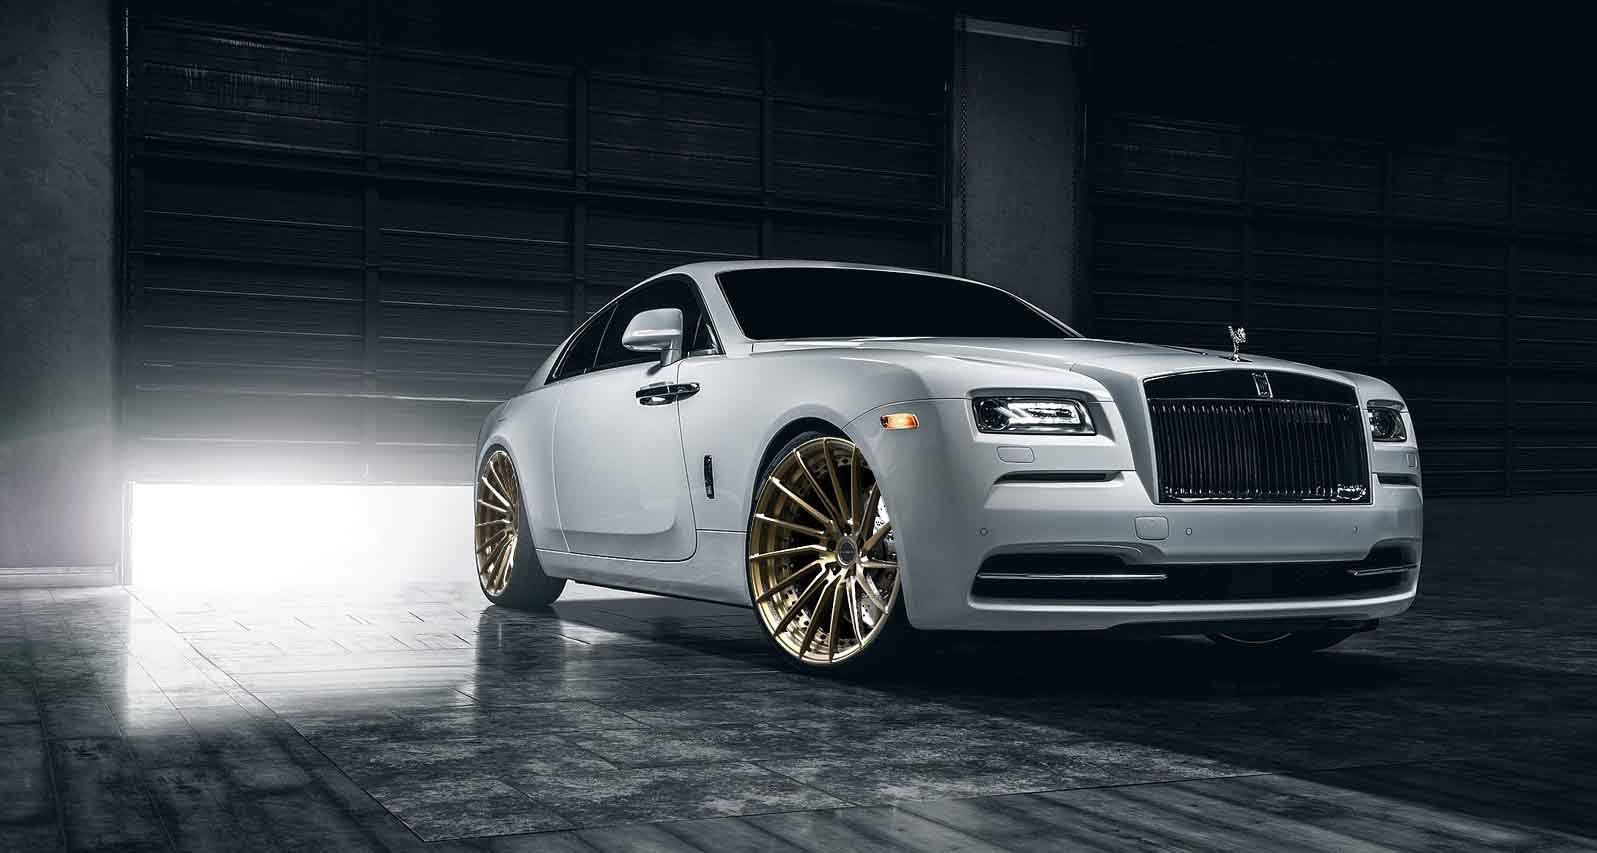 images-products-1-2917-232975205-white-rolls-royce-wraith-brixton-forged-r15-duo-series-wheels-olympic-bronze.jpg